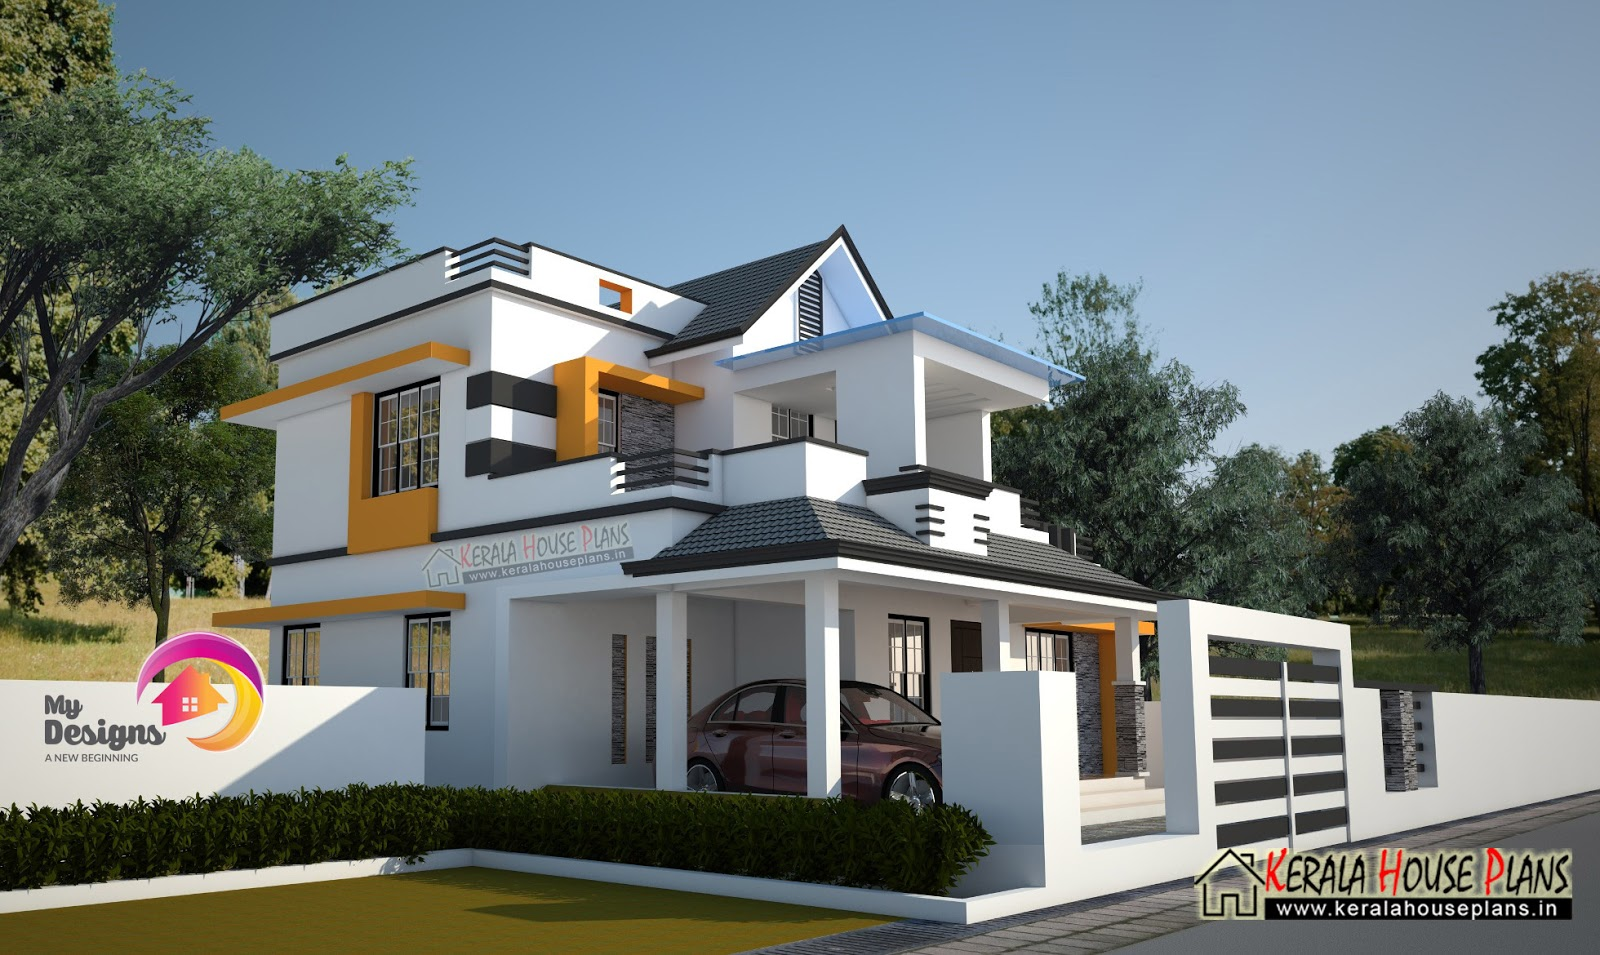 3 bedroom 2 story house design kerala house plans for Two floor house plans in kerala